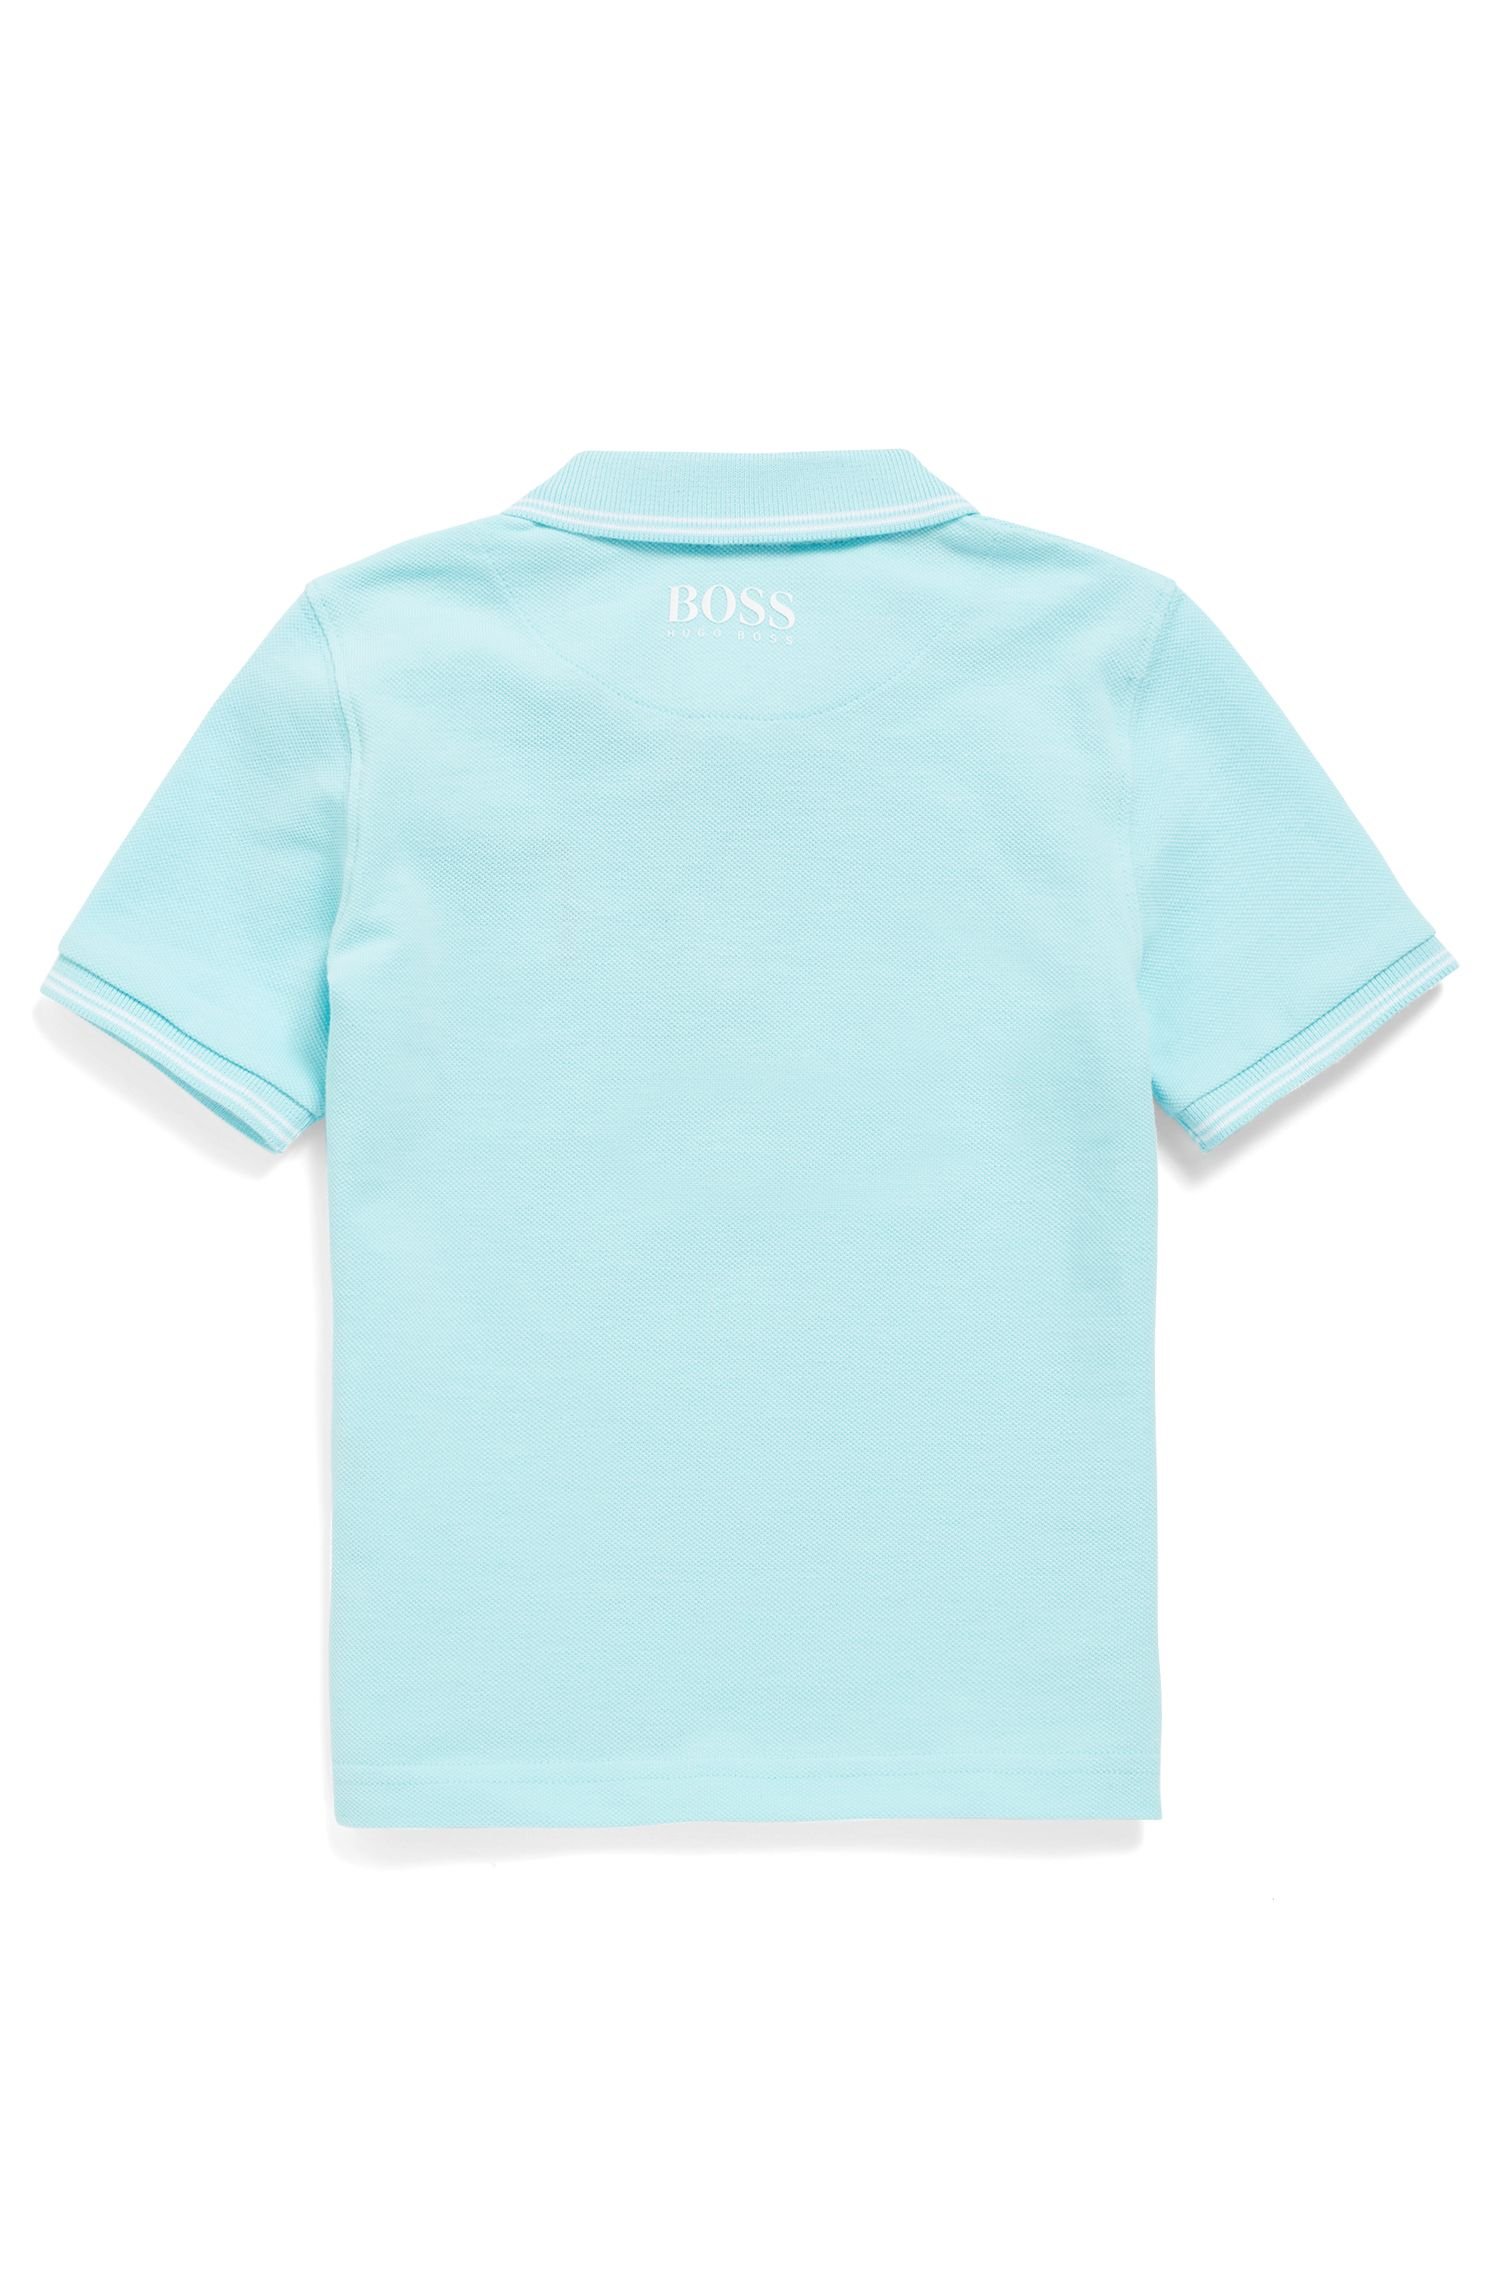 Kids' polo shirt with embroidered logo badge, Light Blue